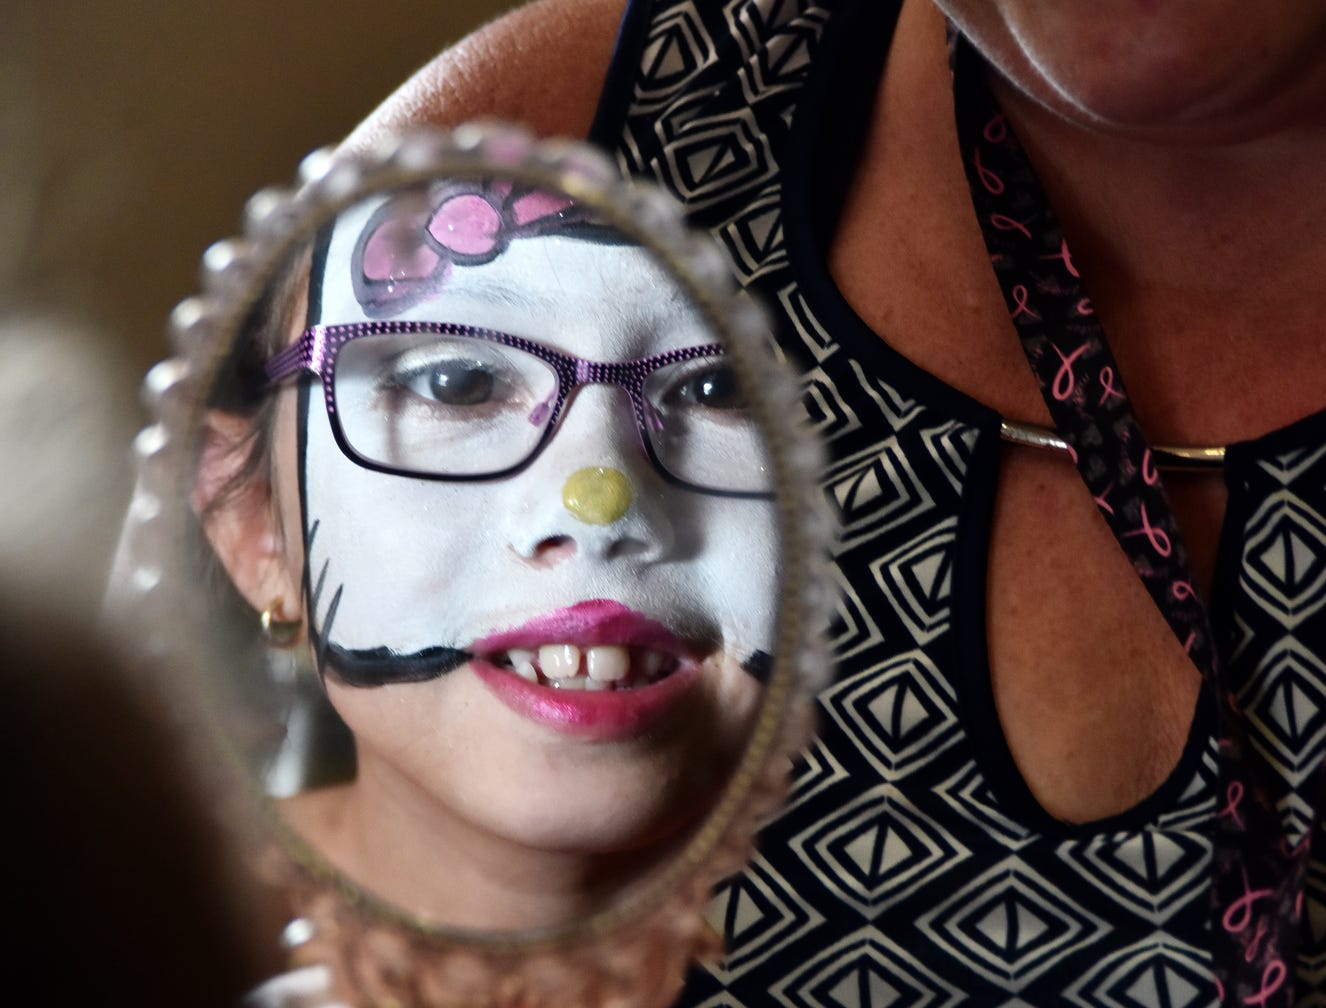 Ellie Barbour, 8, looks into a hand mirror after having her face painted at the Shriners Hospital for Children in Greenville on August 15, 2018.